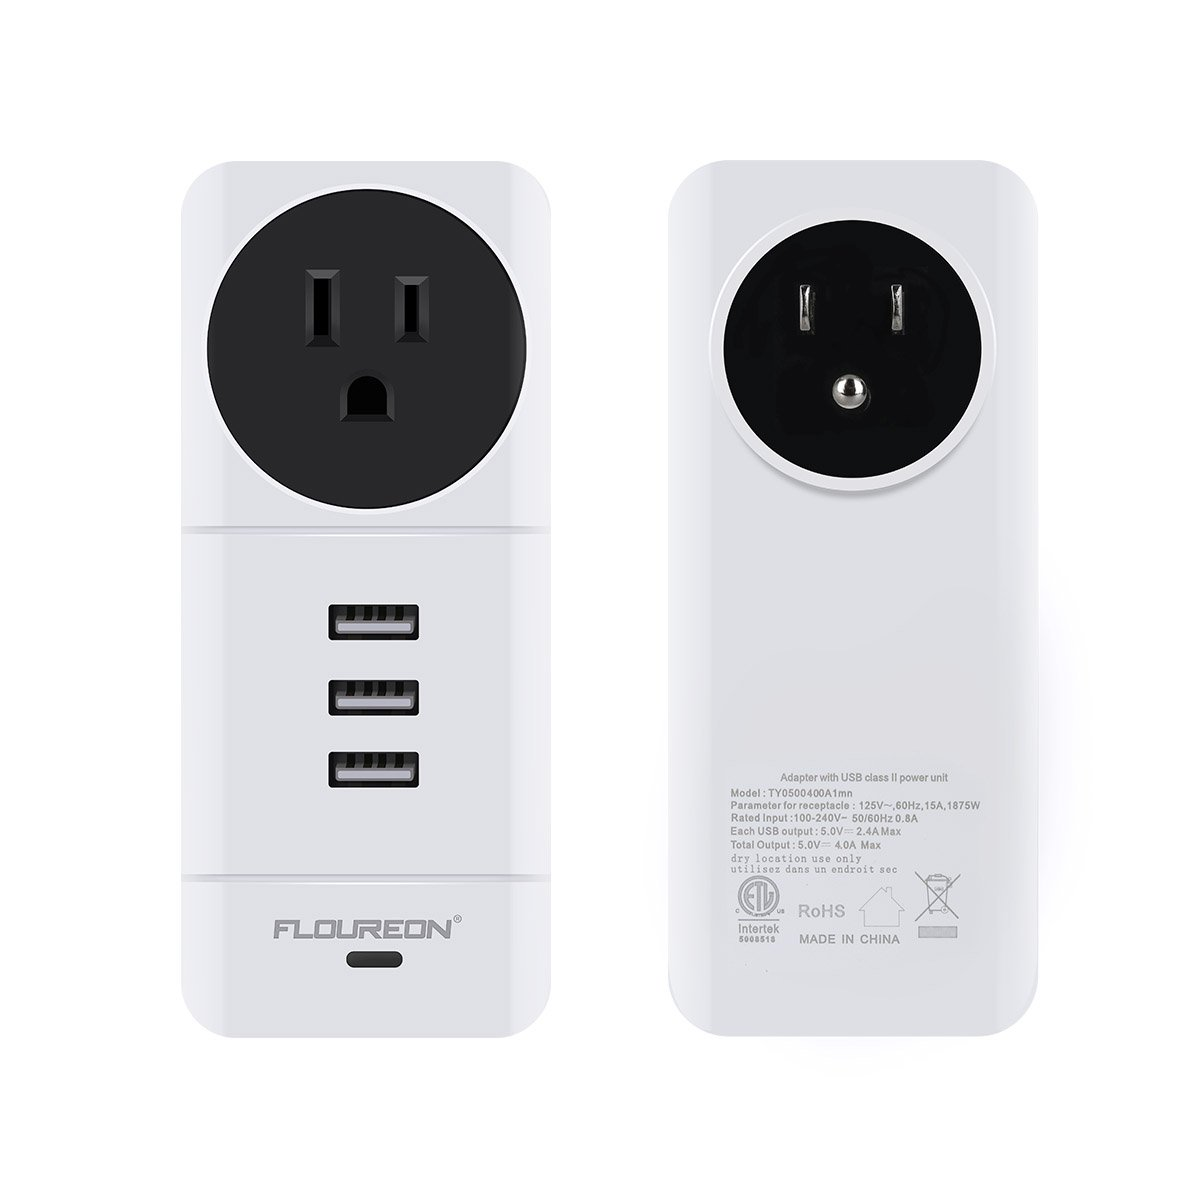 FLOUREON Power Strip USB Phone Charger Portable Travel Wall Charger with Rotate Plug(1 AC Outlet + 3 USB Ports) Charging Station with Smart IC